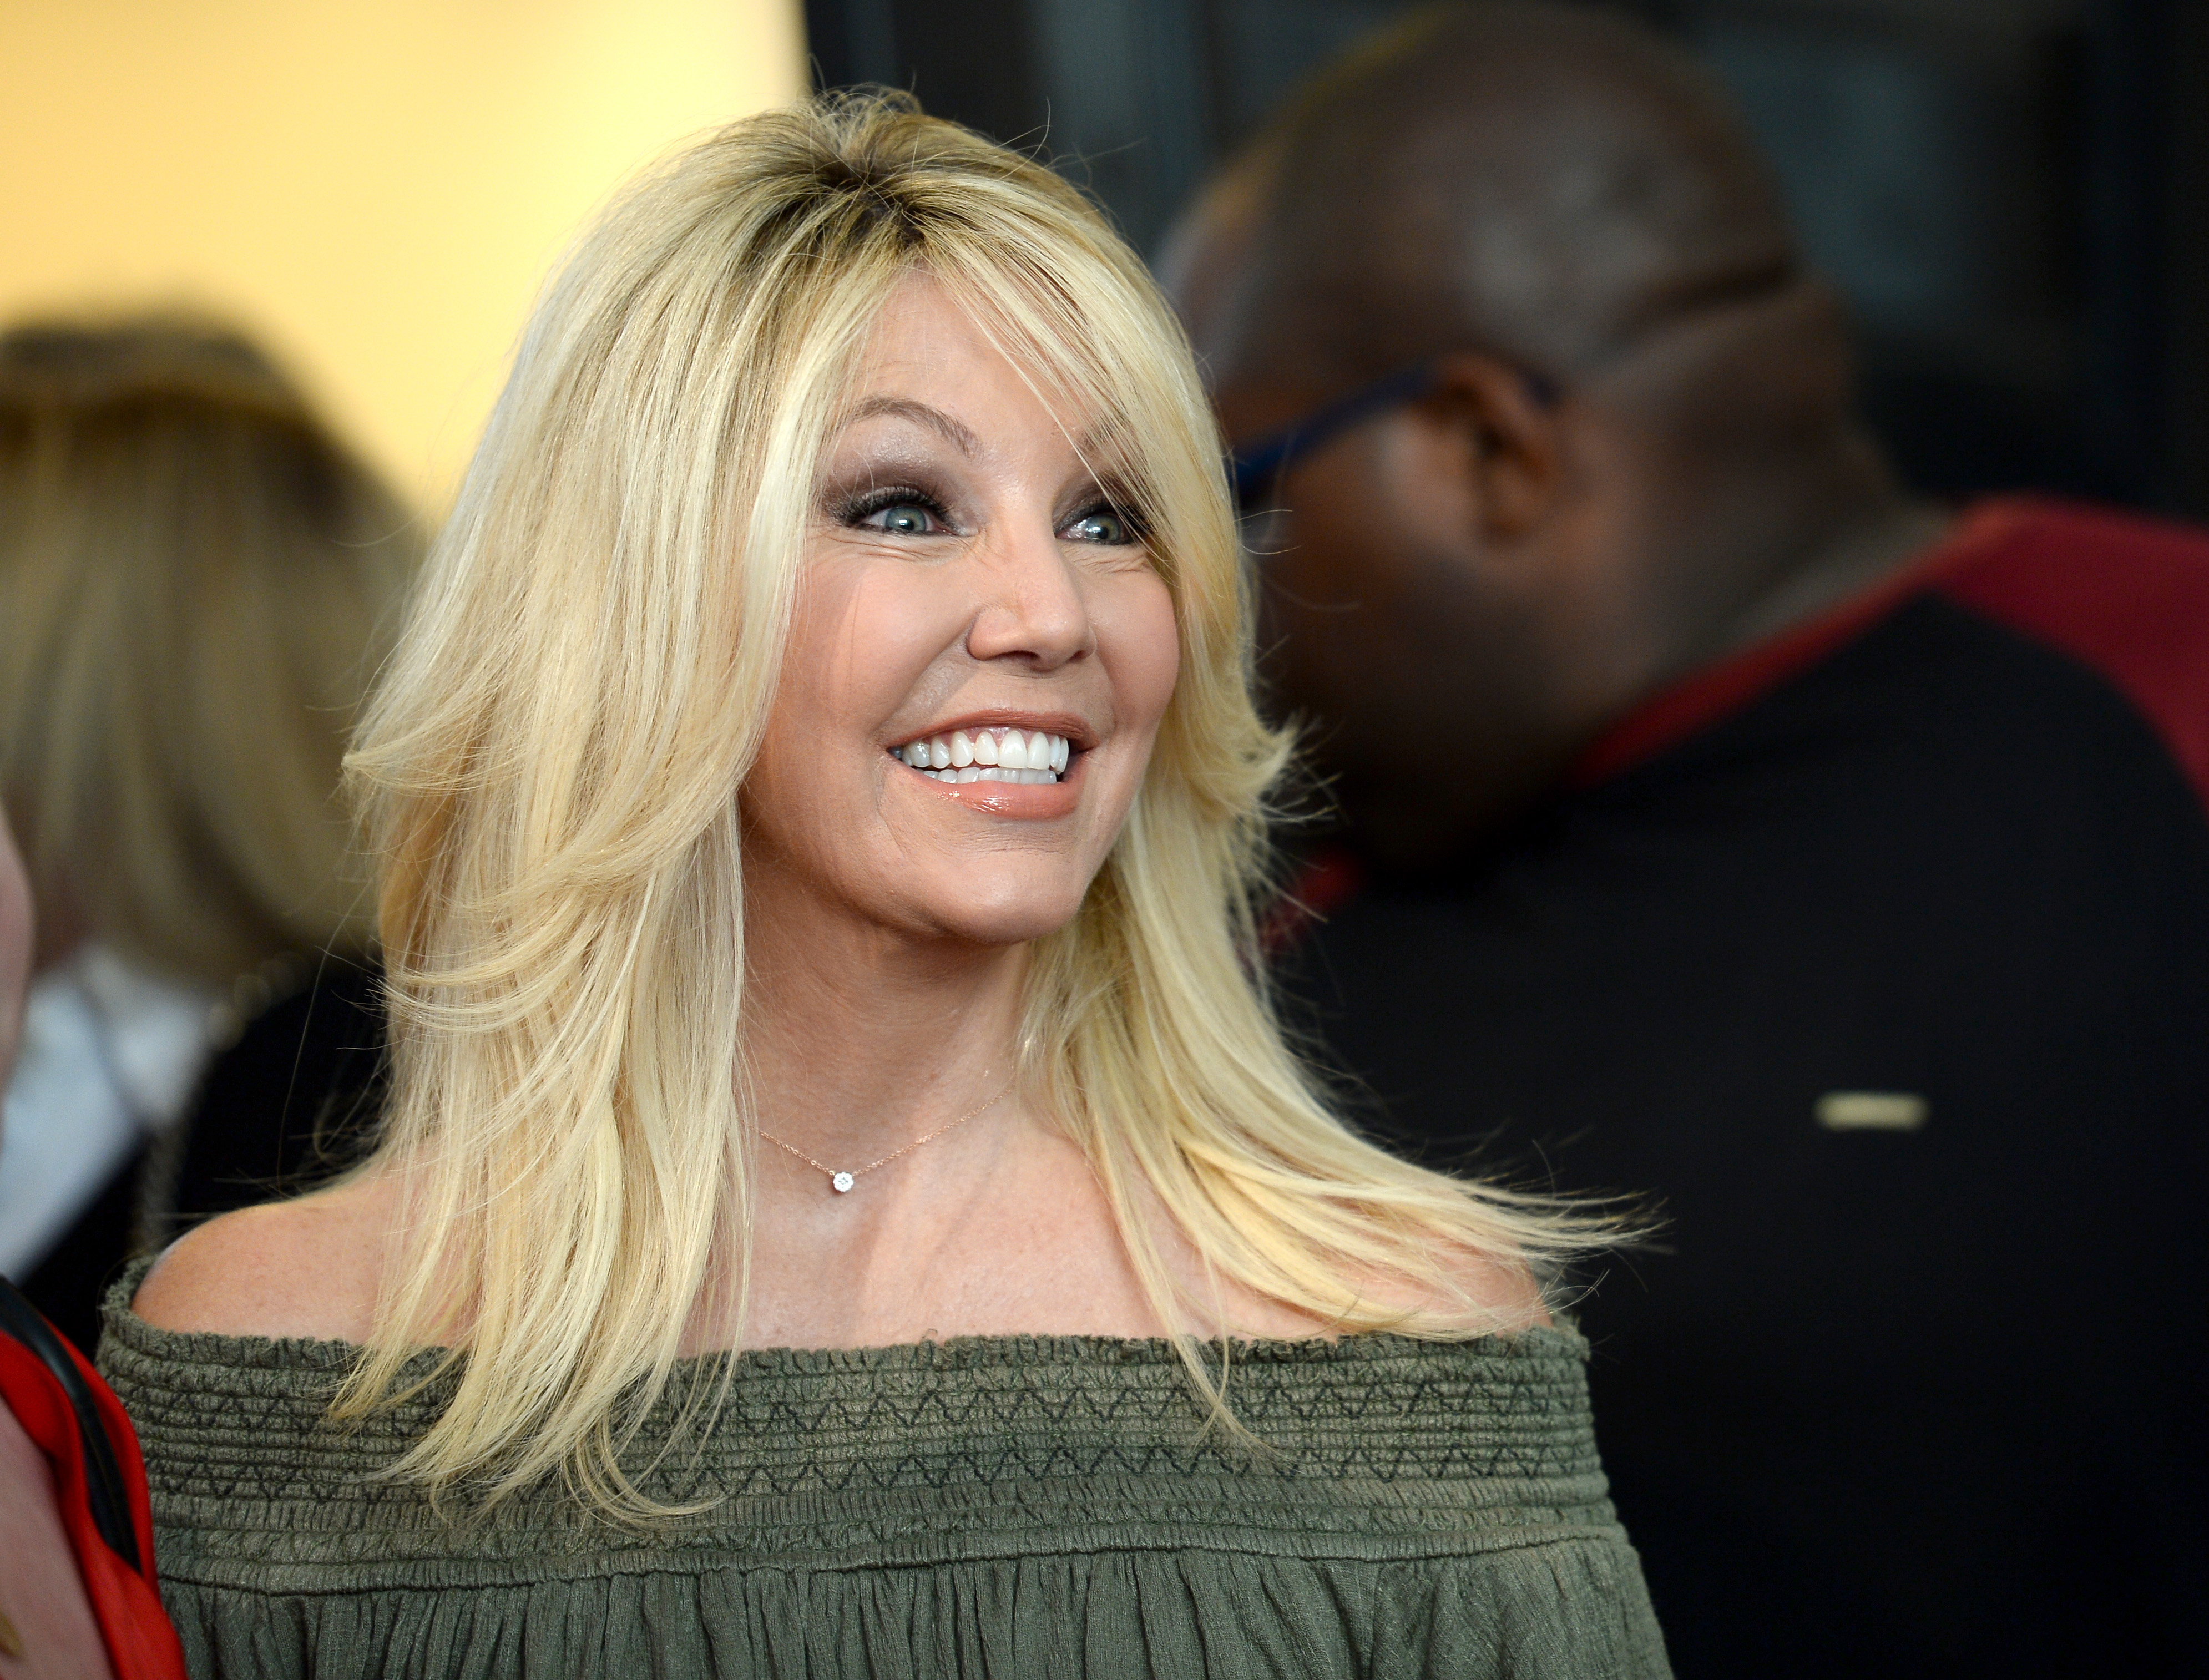 Heather Locklear ordered to treatment by judge